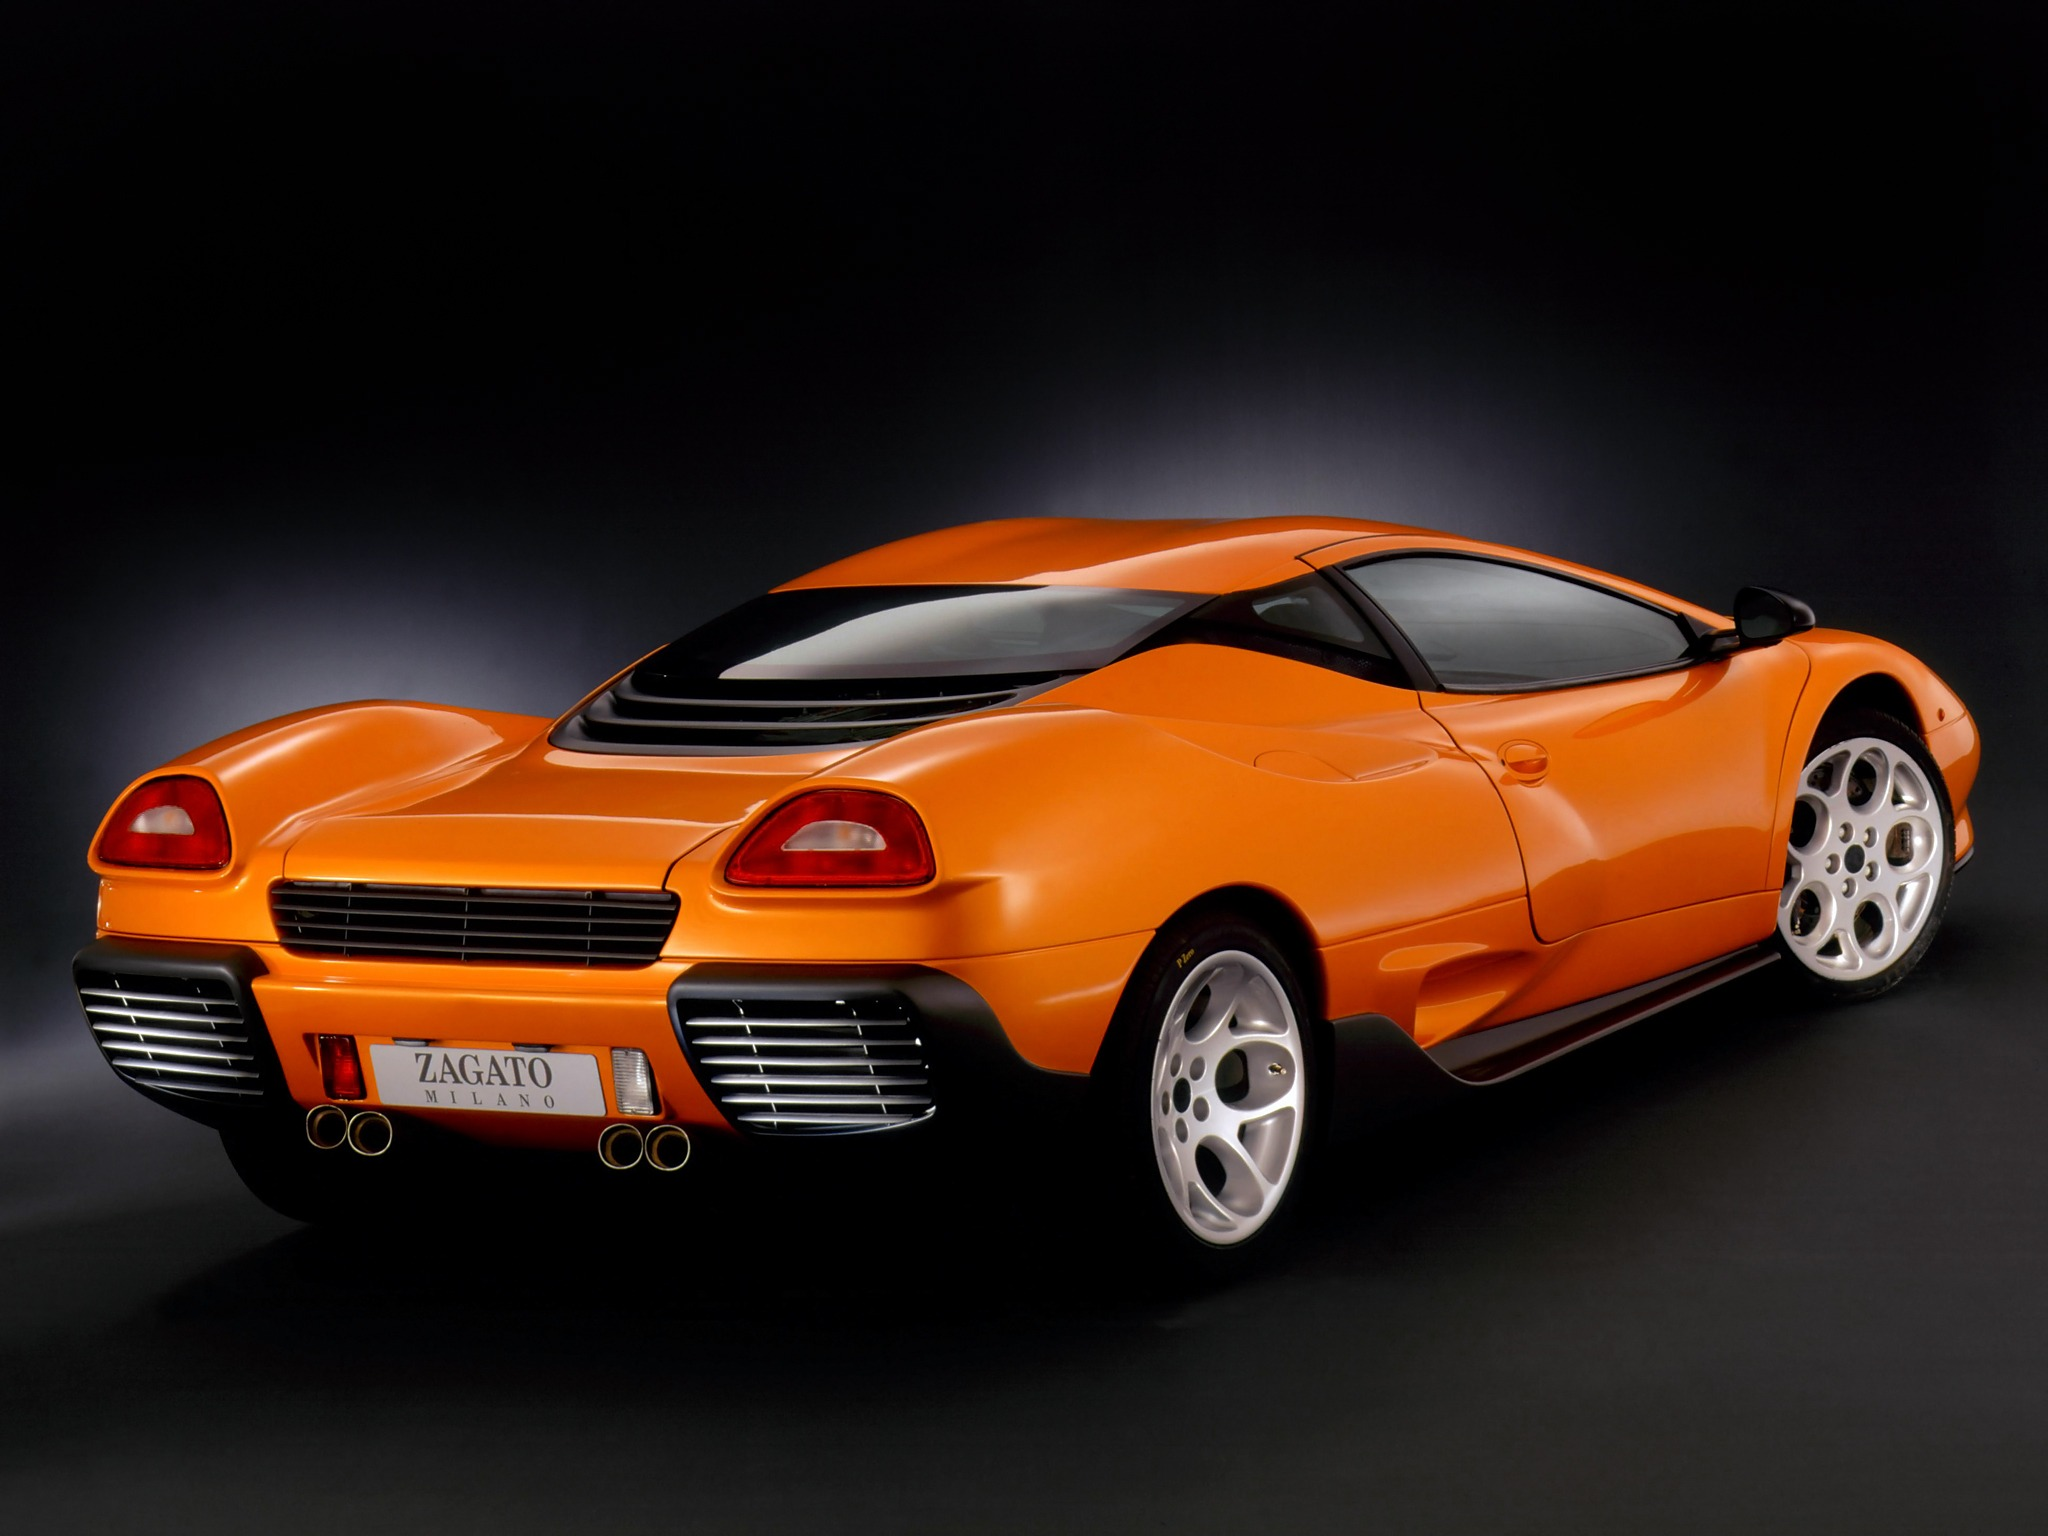 lamborghini concept archives – old concept cars